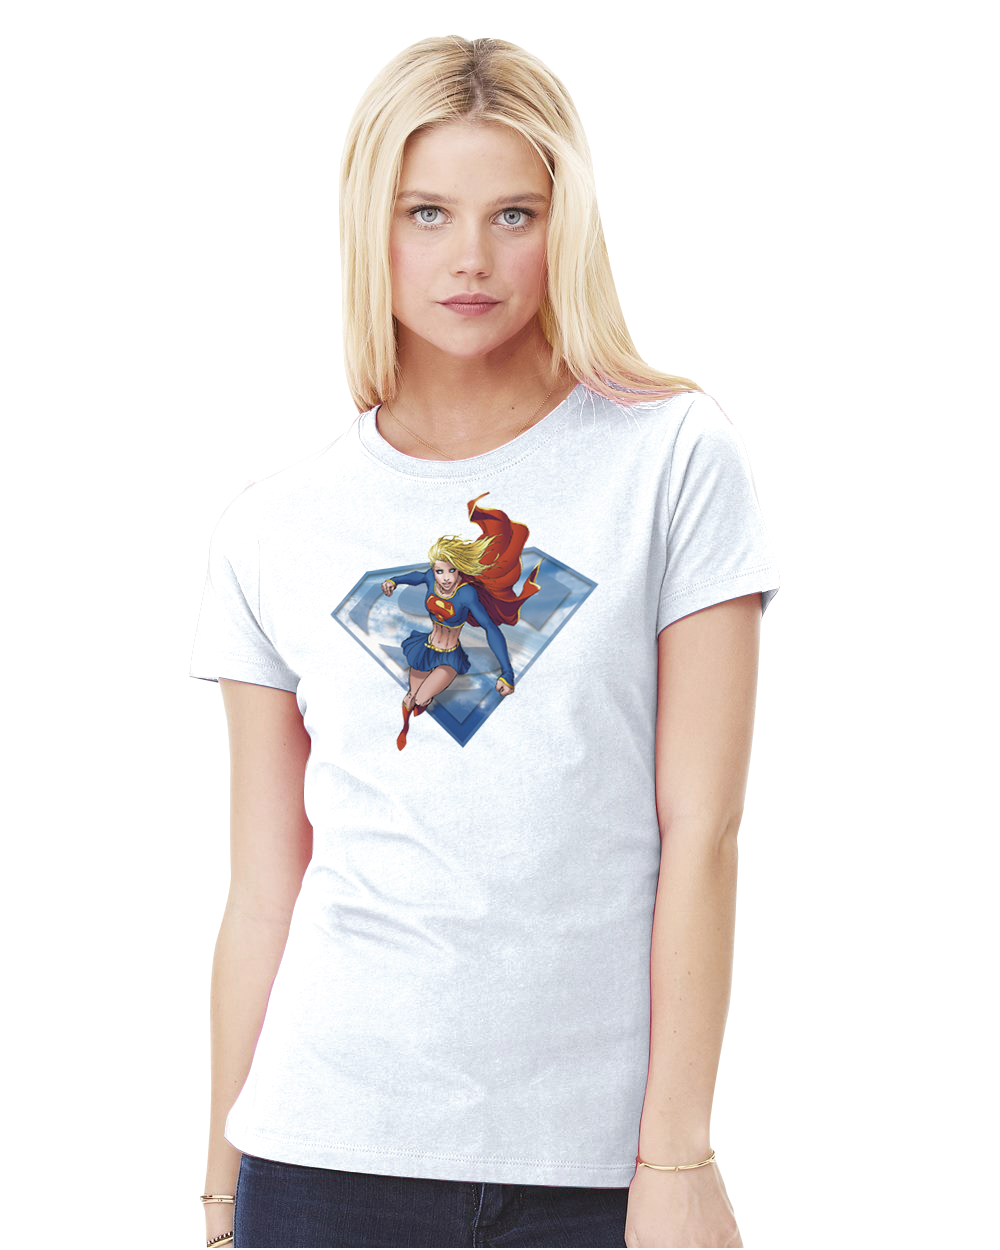 SUPERGIRL BY TURNER WOMENS T/S XL